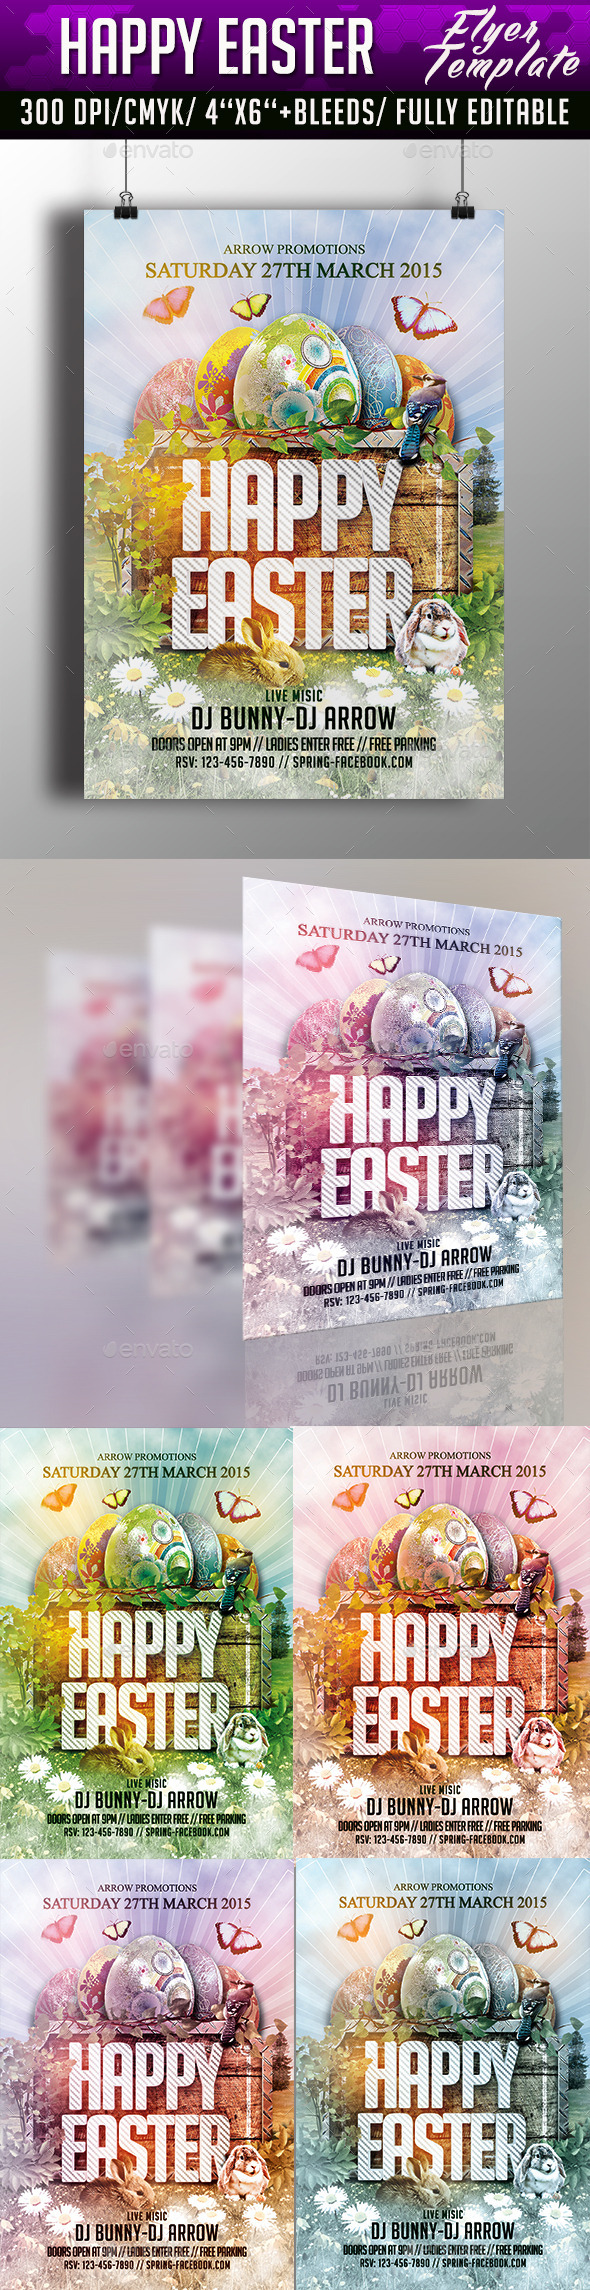 GraphicRiver Happy Easter Flyer Template 10514493